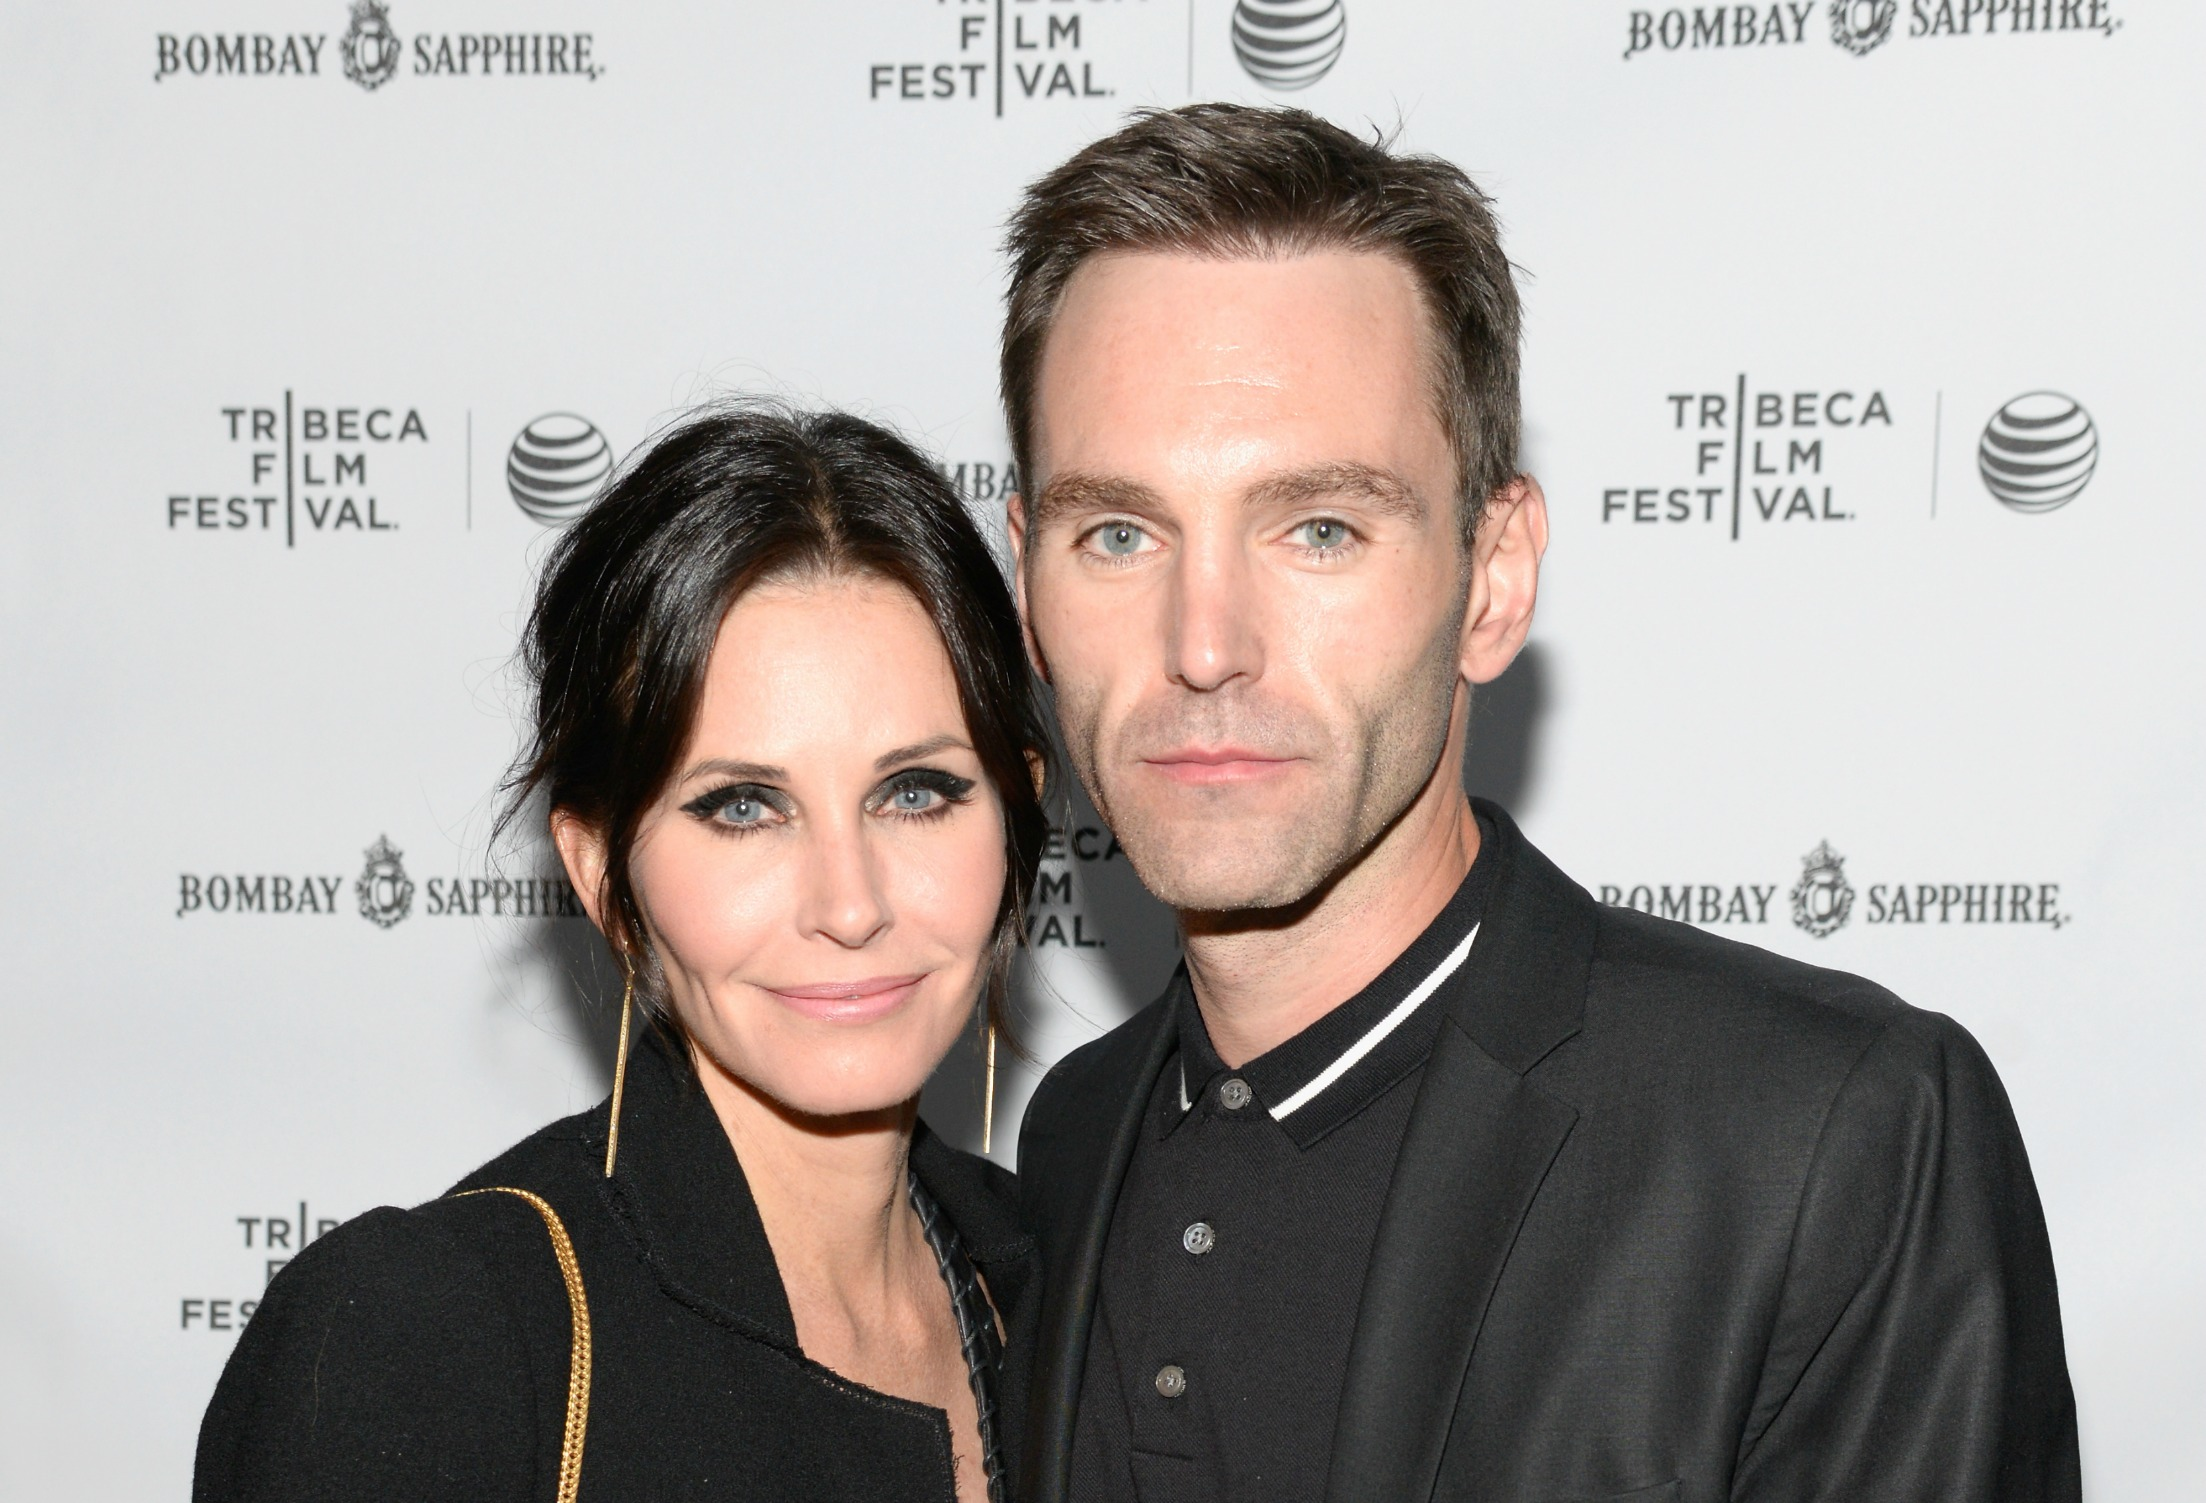 Courteney Cox's fiancé got a super intimate tattoo for her, so true love DOES exist